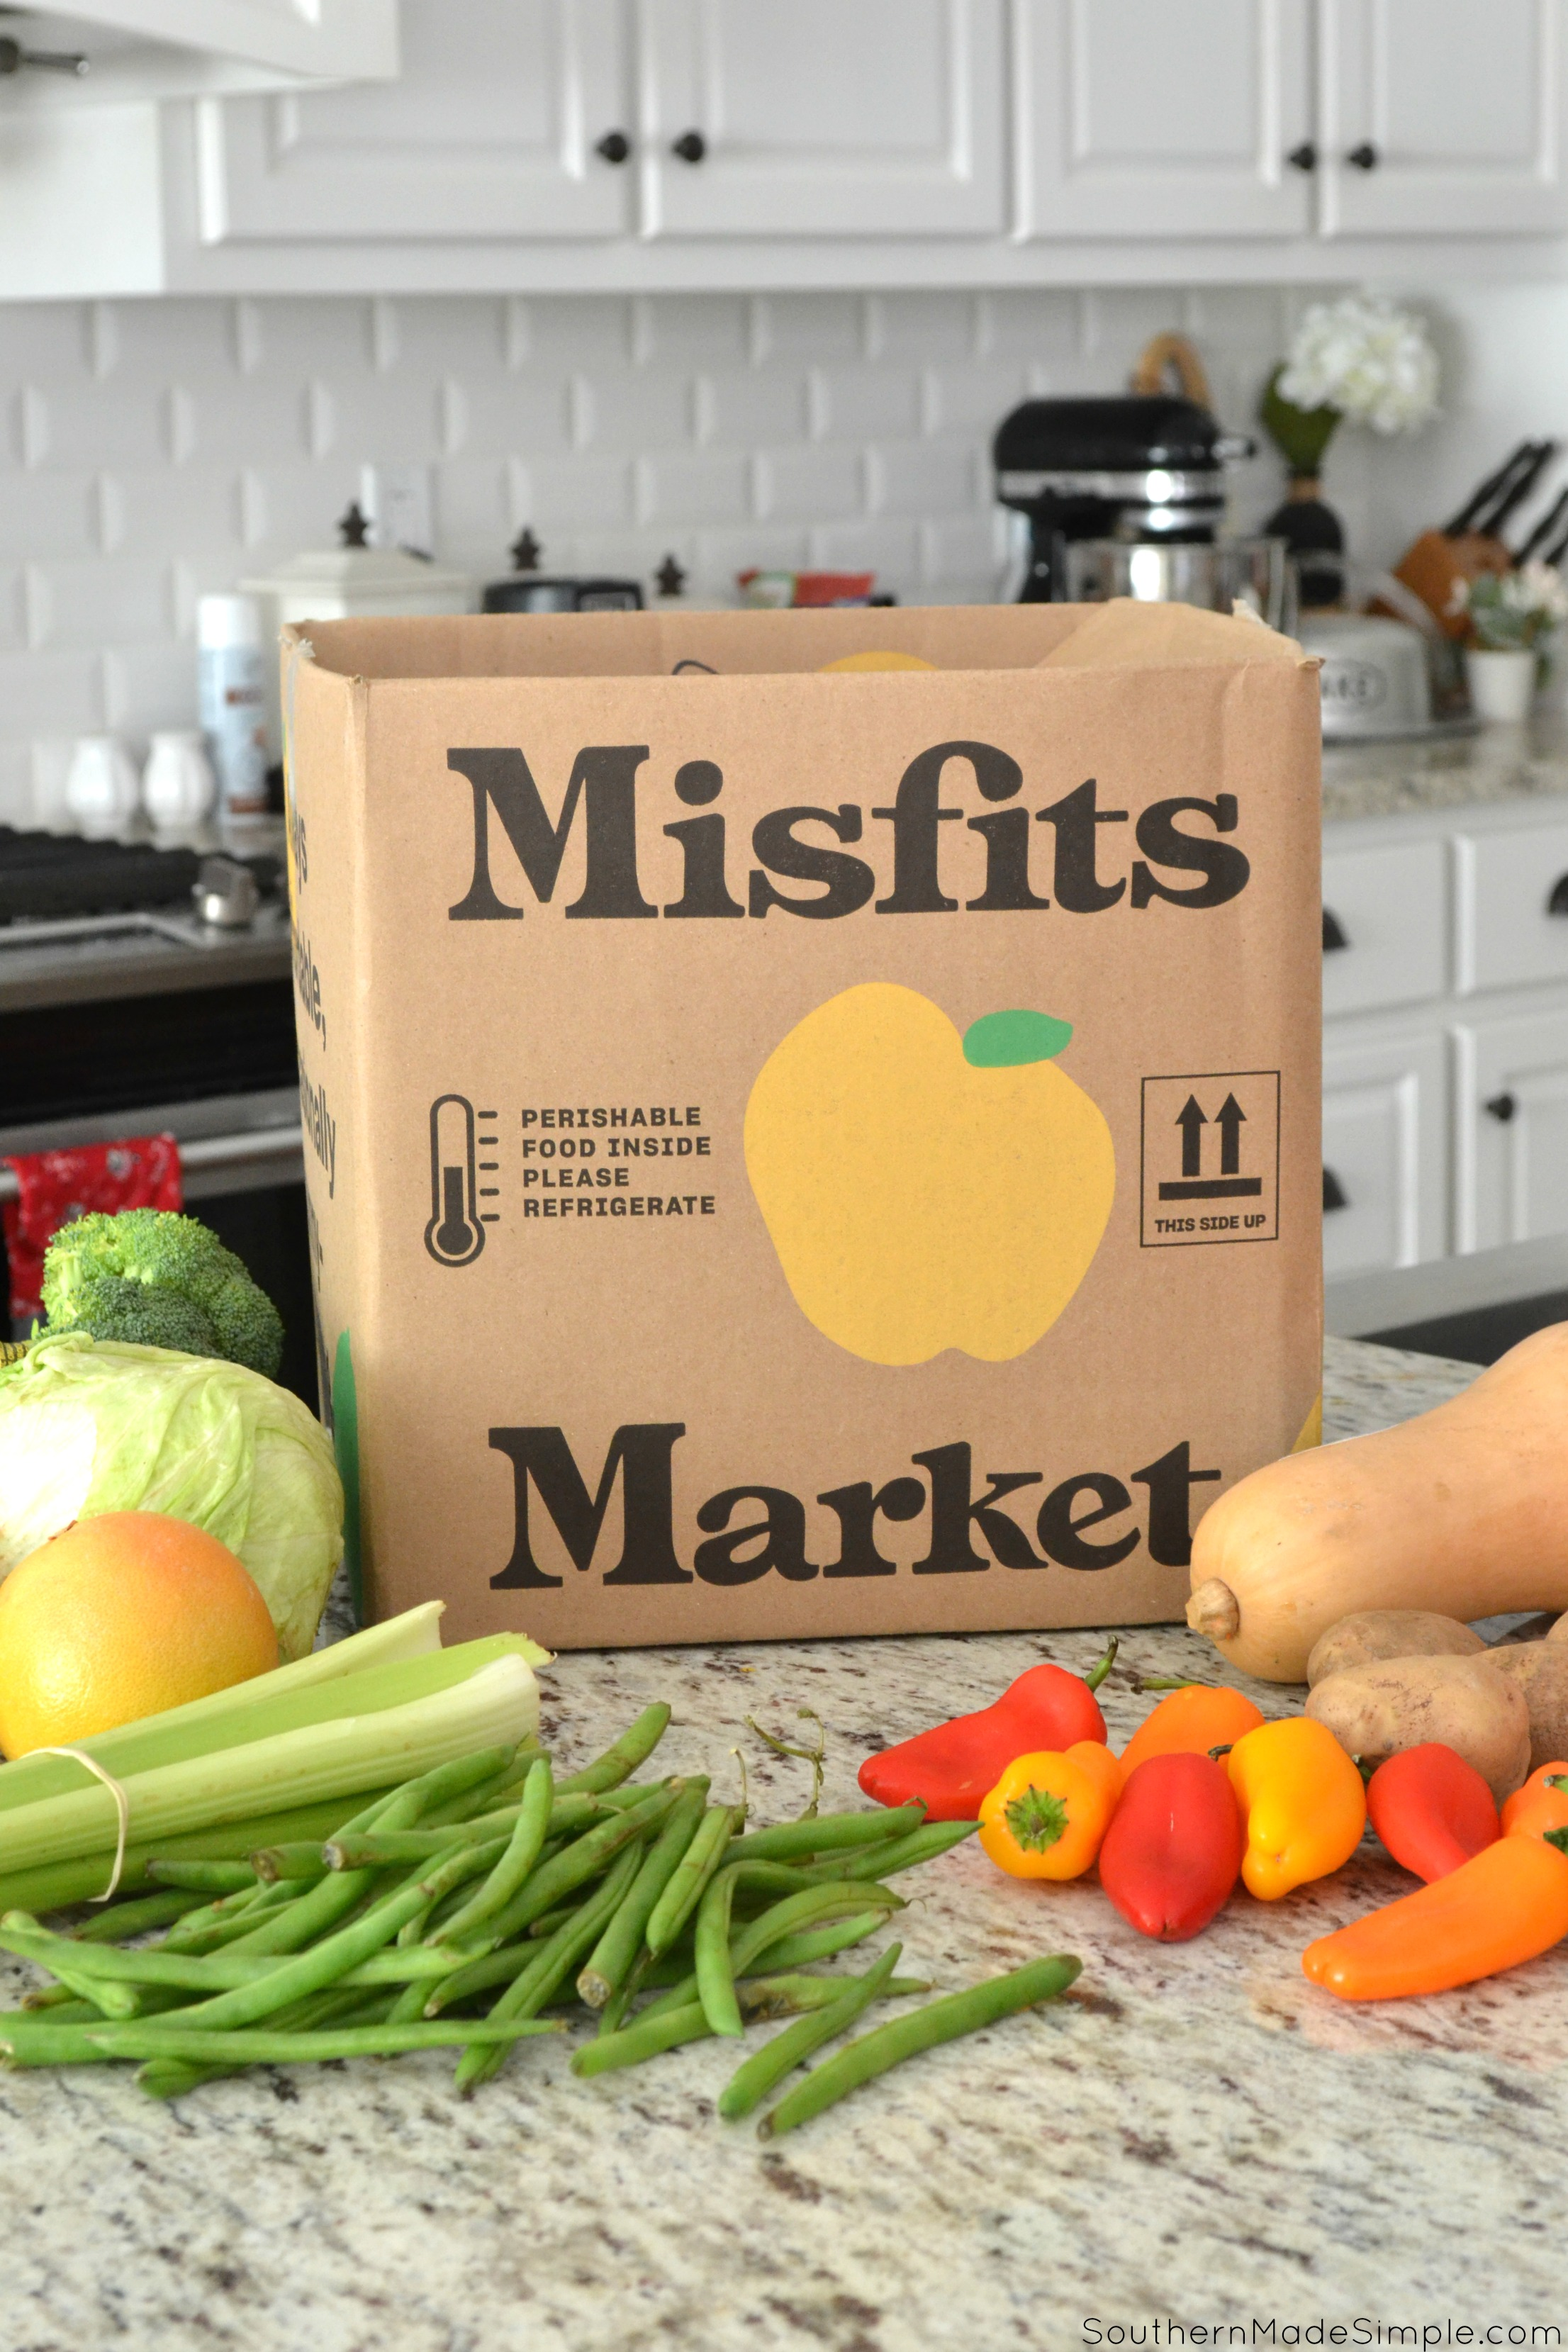 Misfits Market - Here's Why I'm Hooked!